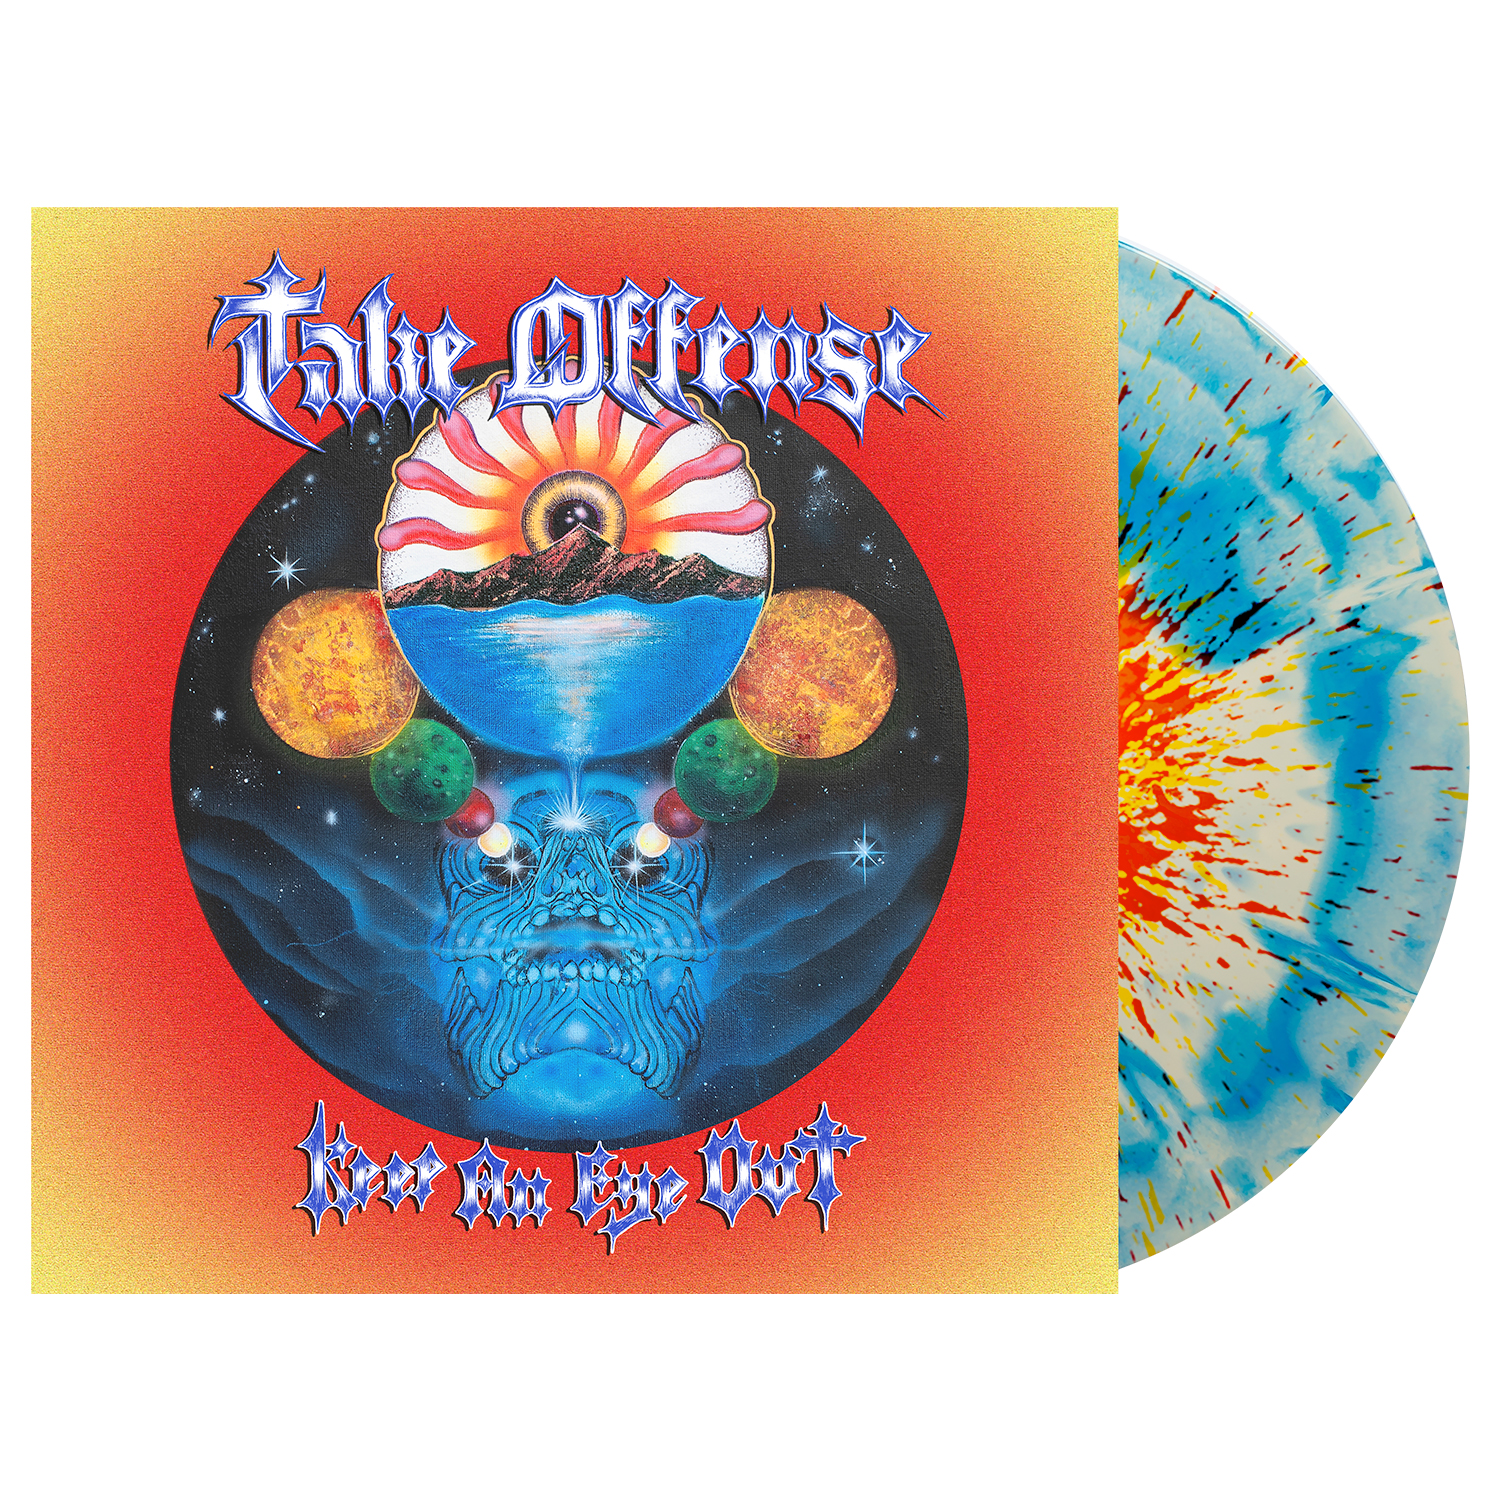 Take Offense 'Keep An Eye Out' PN Webstore Exclusive LP - White & Cyan Blue